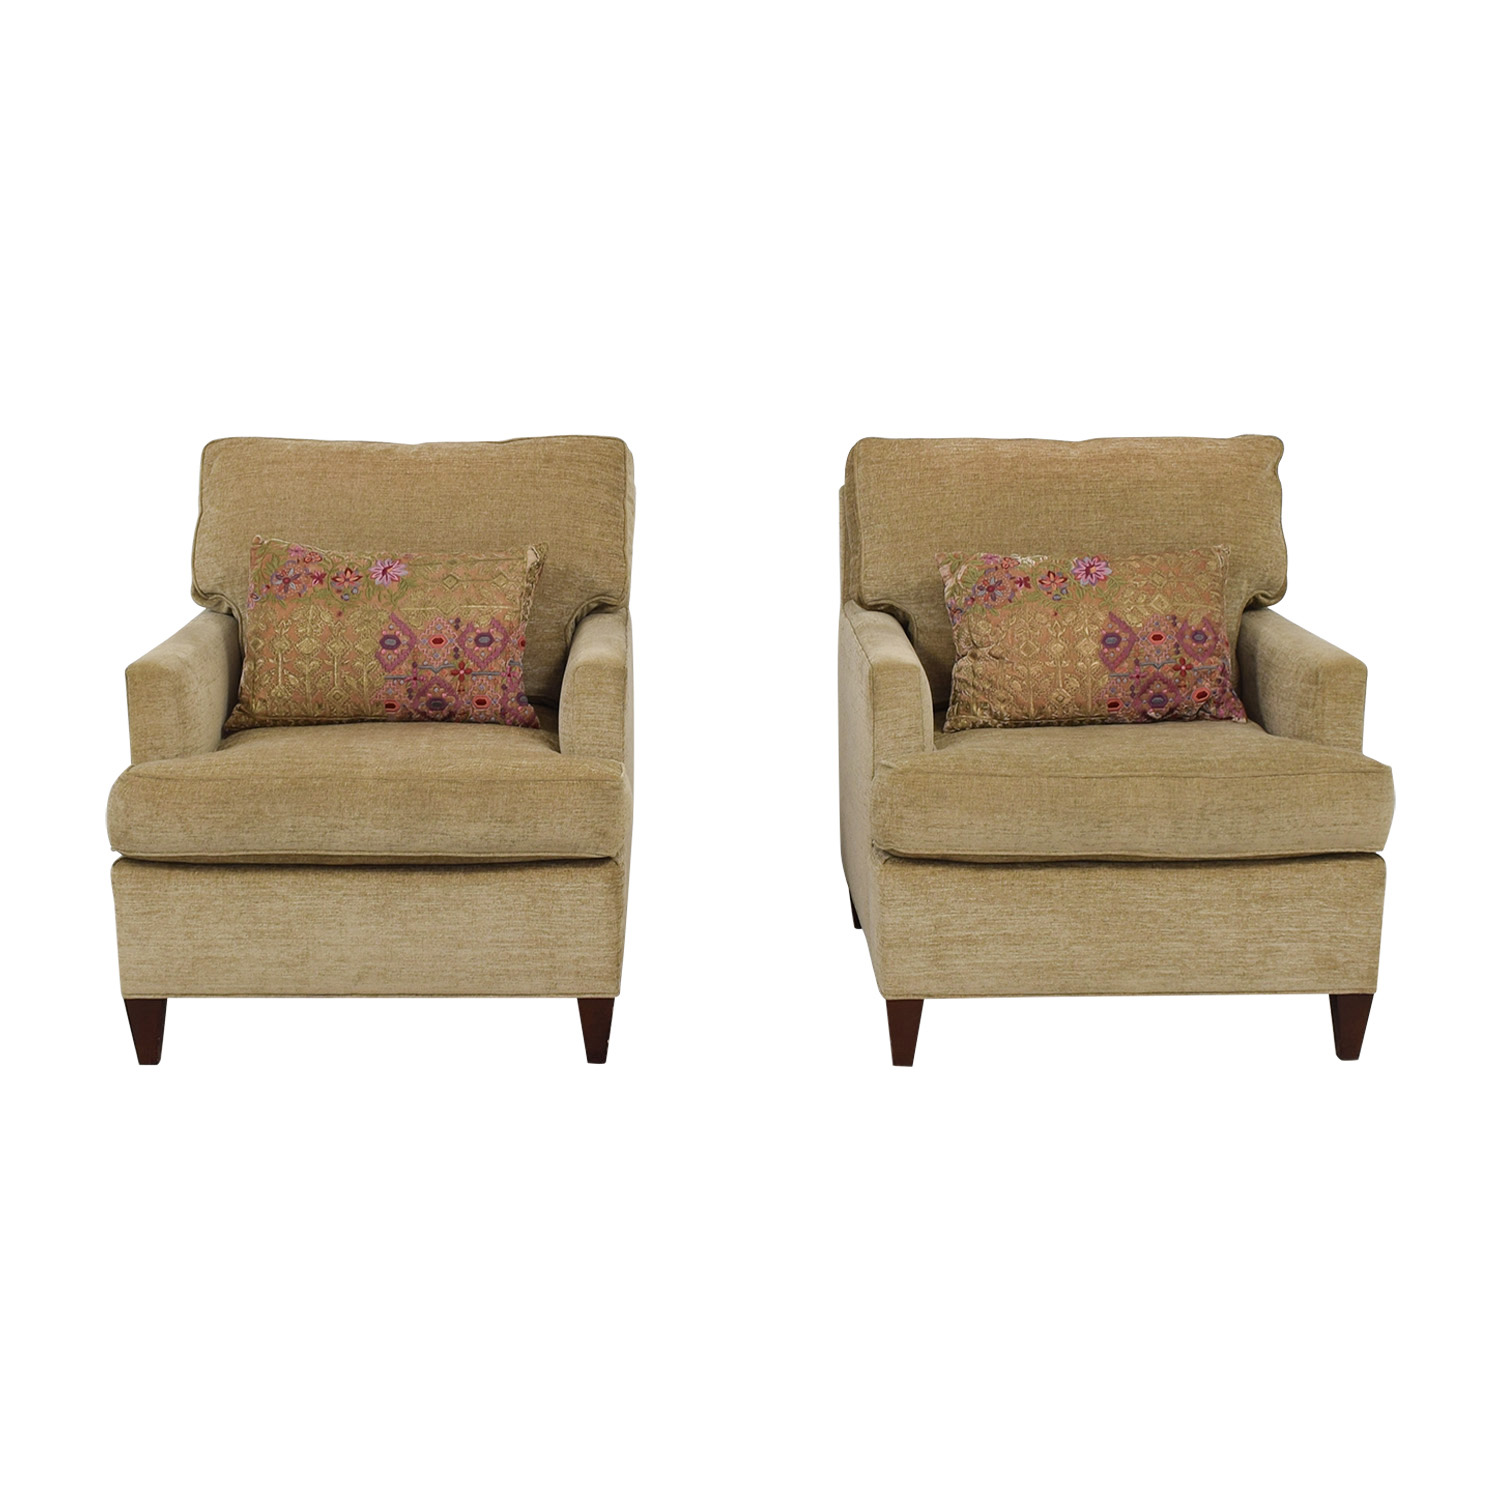 Hickory Chair Hickory Chair Beige Chenille Accent Chairs with Toss Pillows Chairs